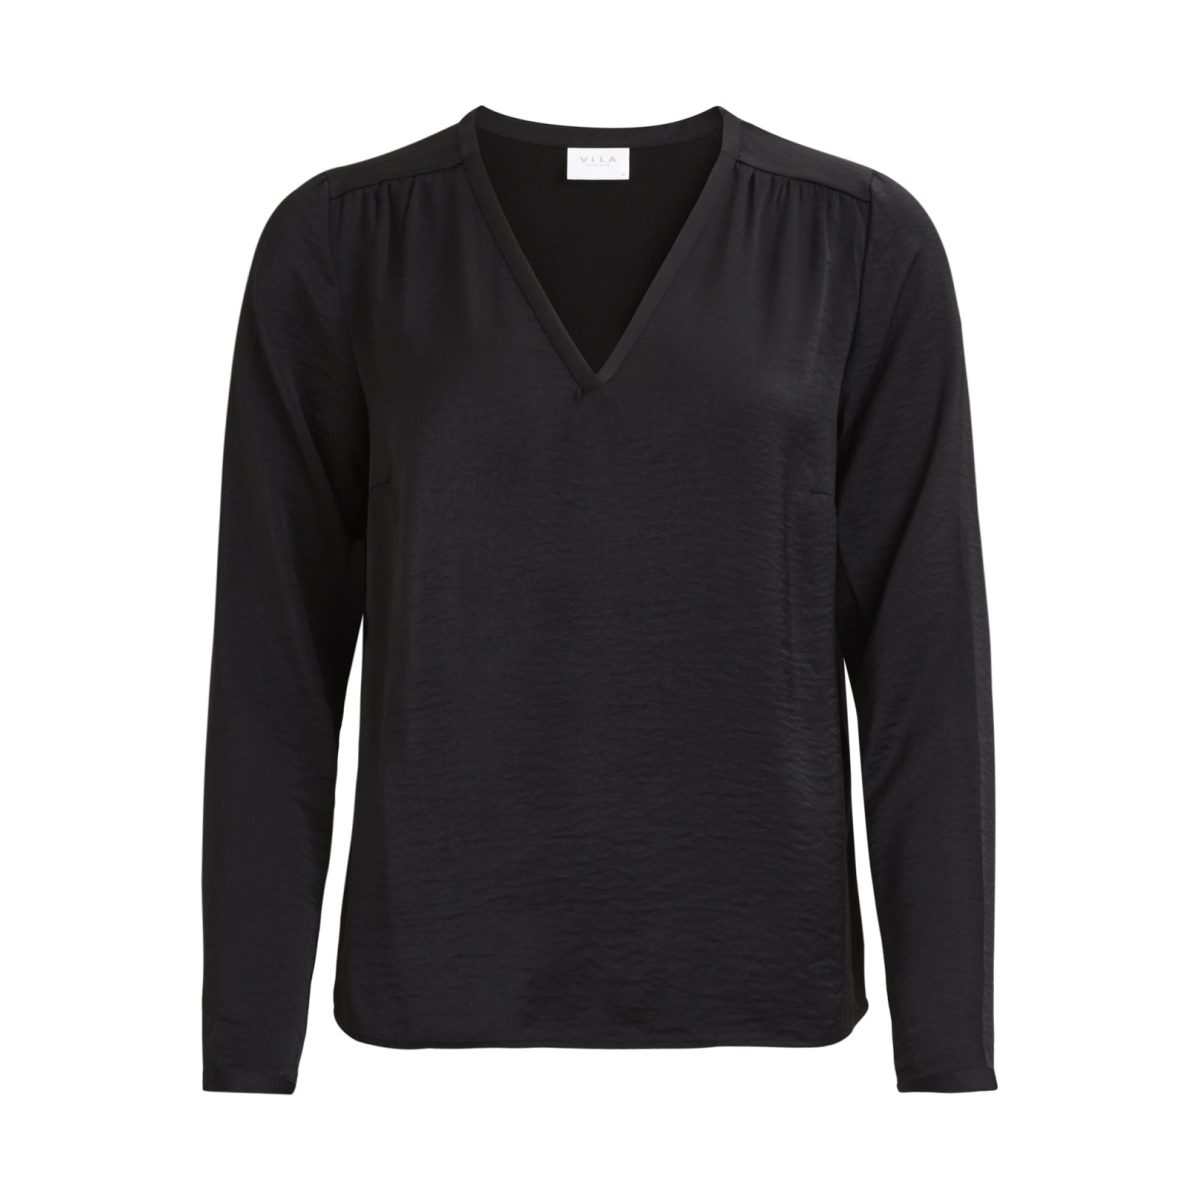 vicava l/s v-neck top-noos 14042801 vila blouse black